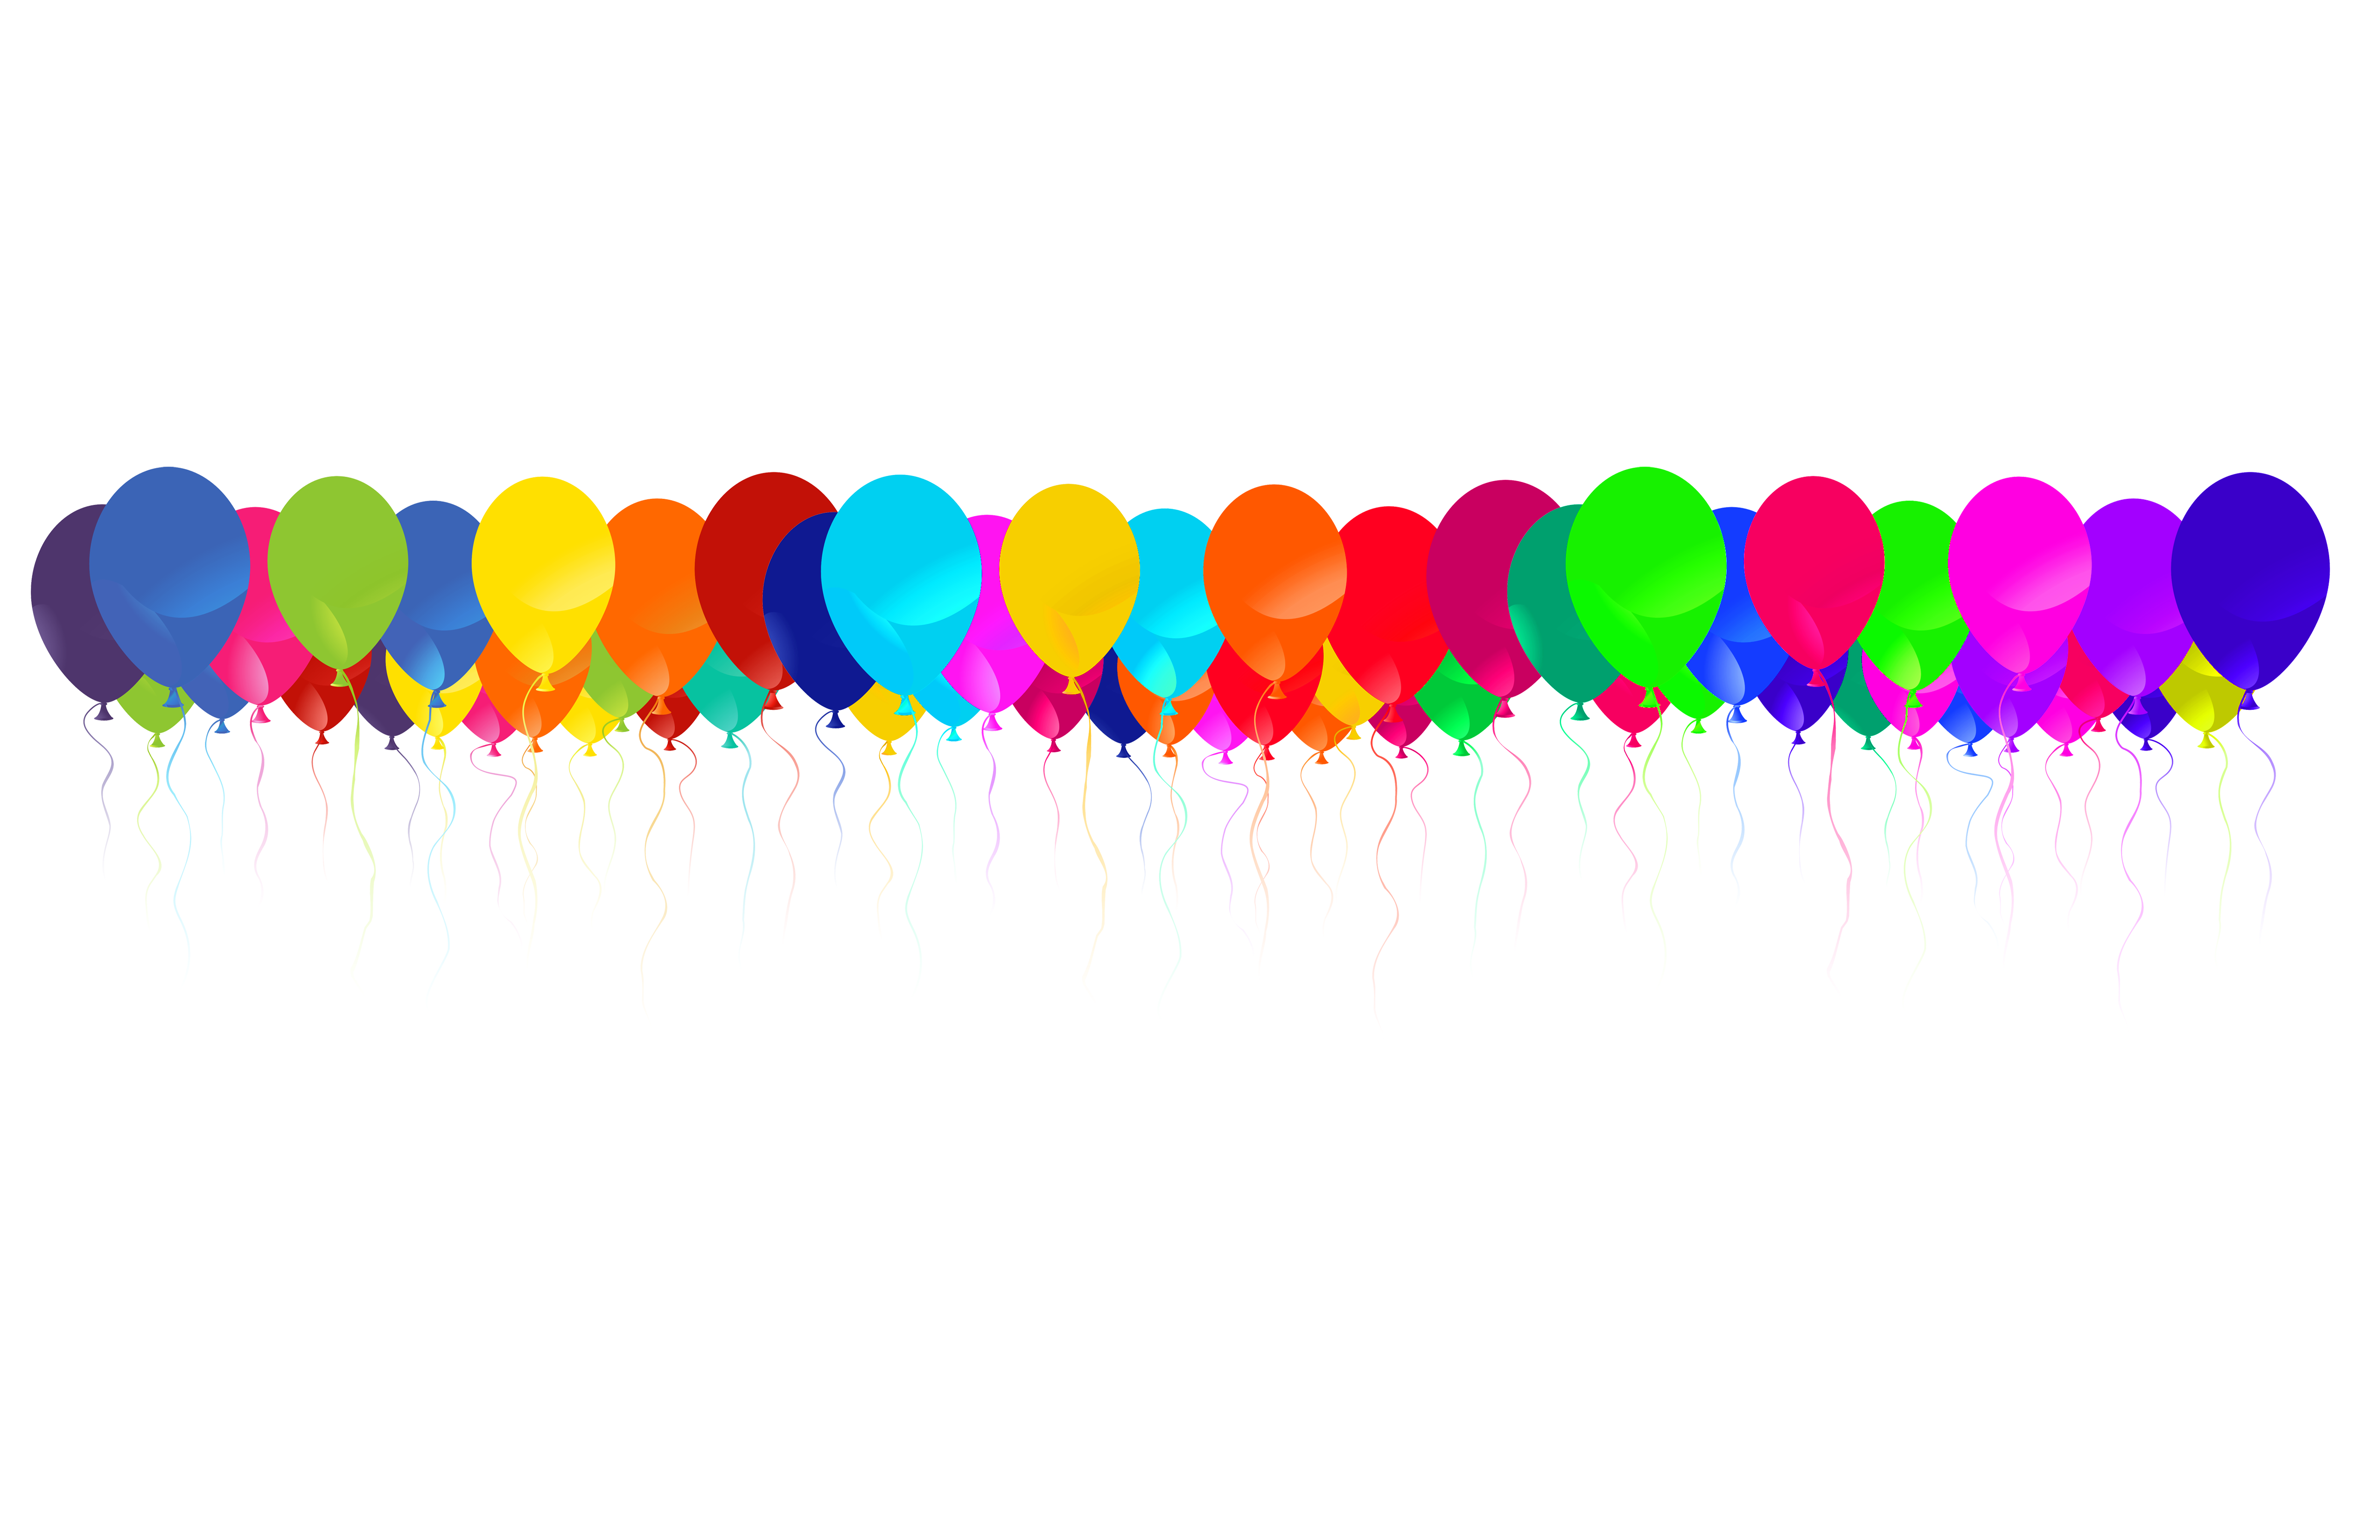 Borders png images. Free balloon border download